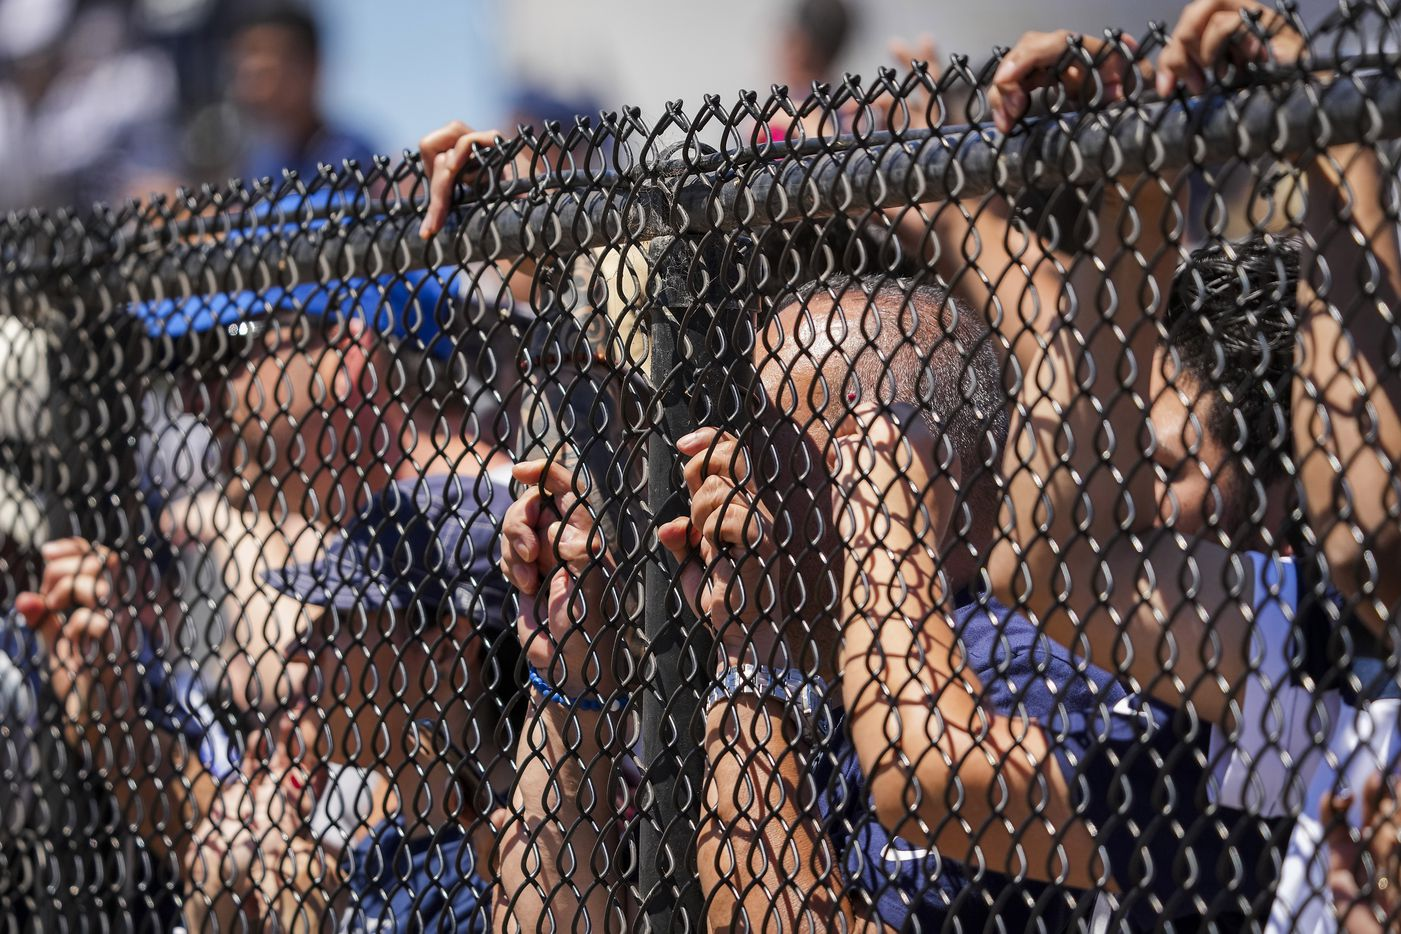 Fans press against a fence to watch the Dallas Cowboys practice at training camp on Sunday, Aug. 1, 2021, in Oxnard, Calif.